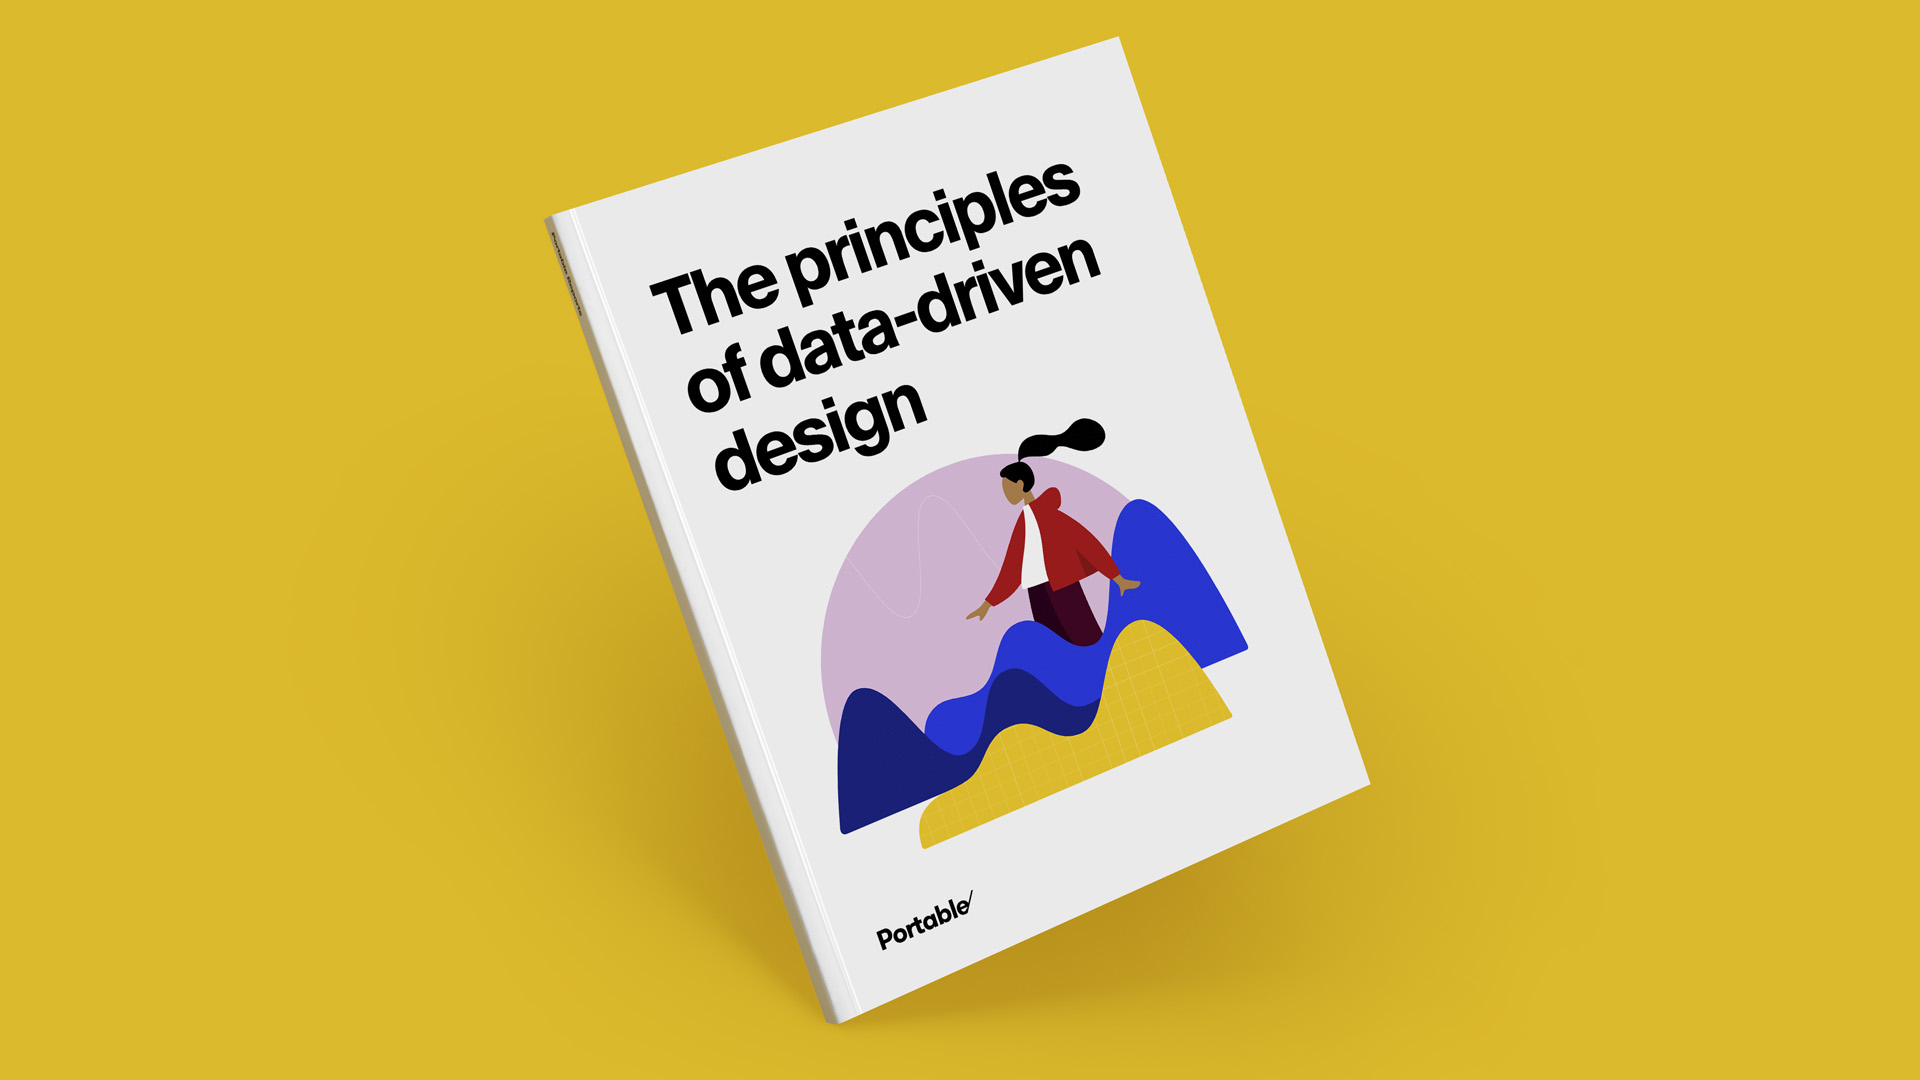 The principles of data-driven design